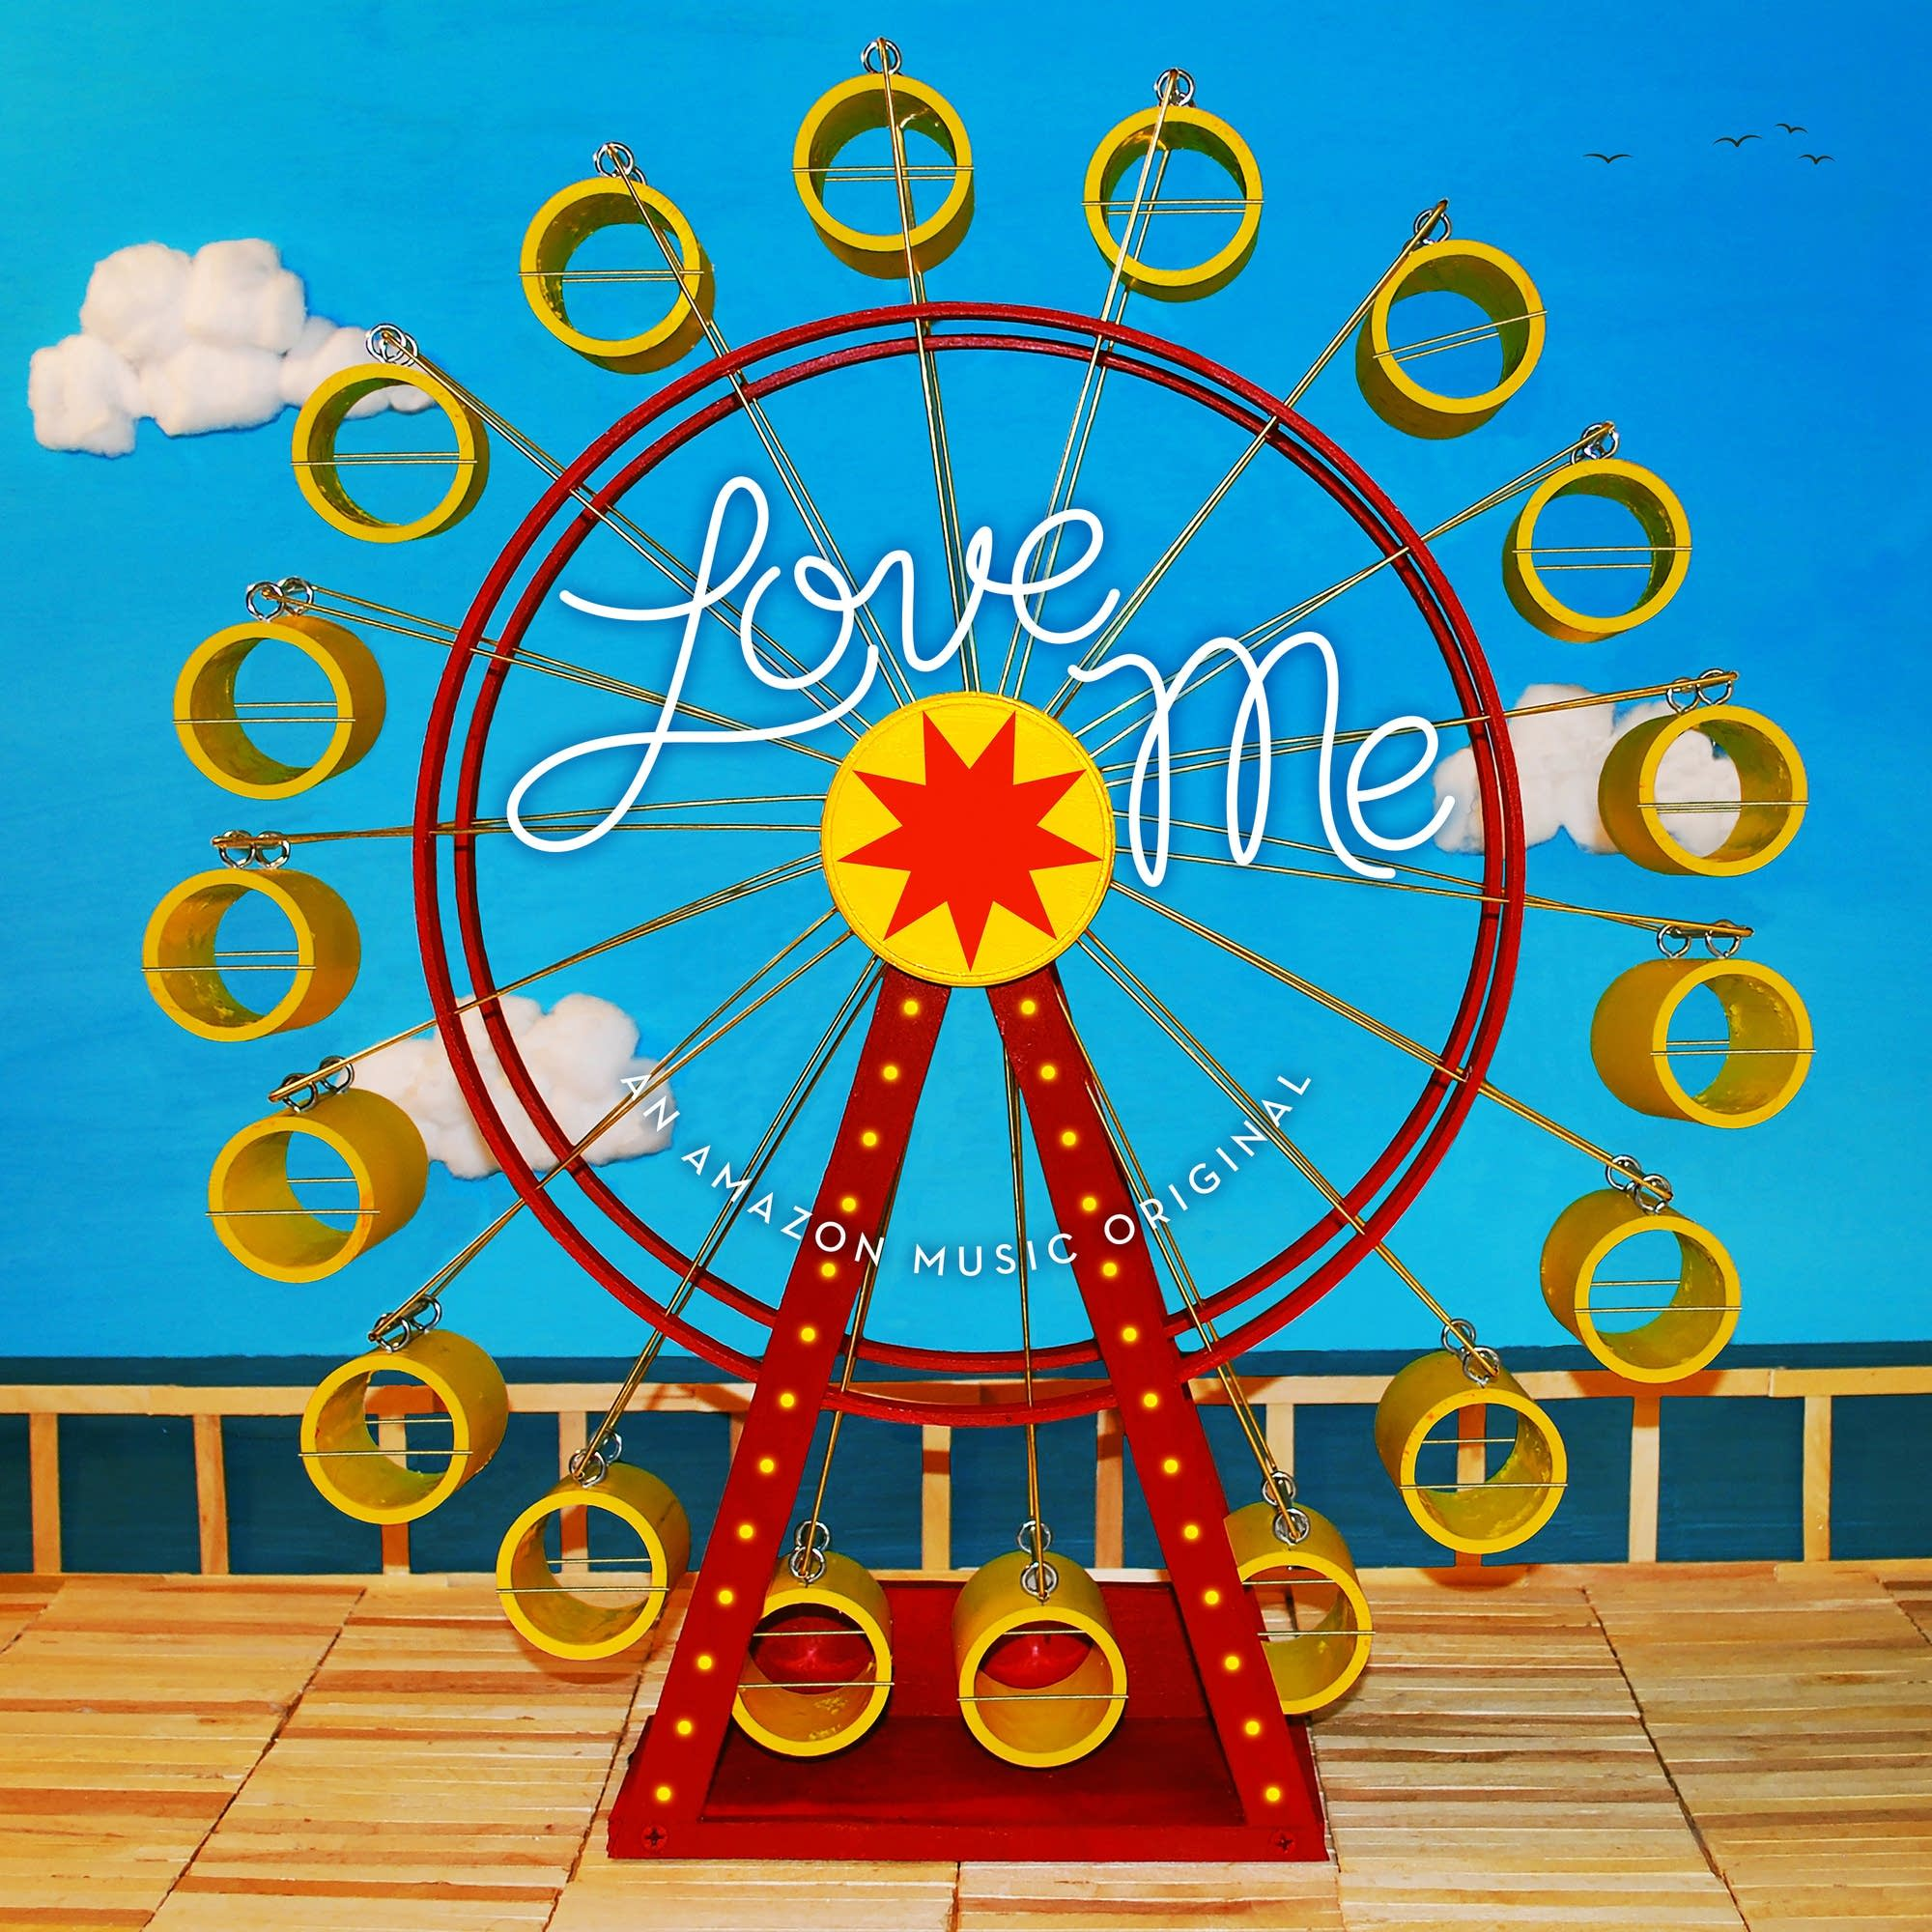 Amazon Music's 'Love Me' playlist artwork